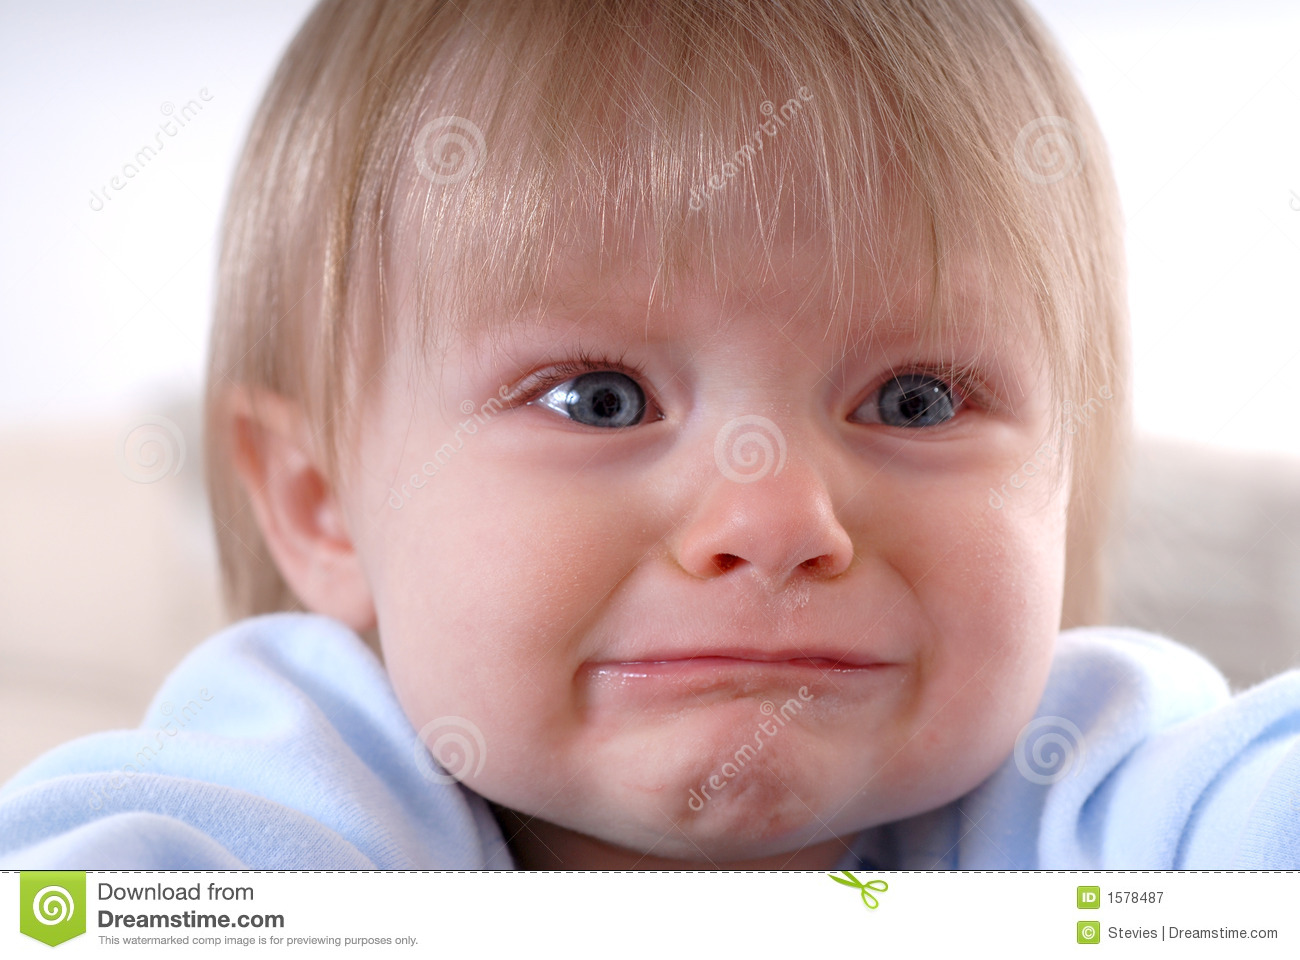 Sad Baby Royalty Free Stock Photography - Image: 1578487